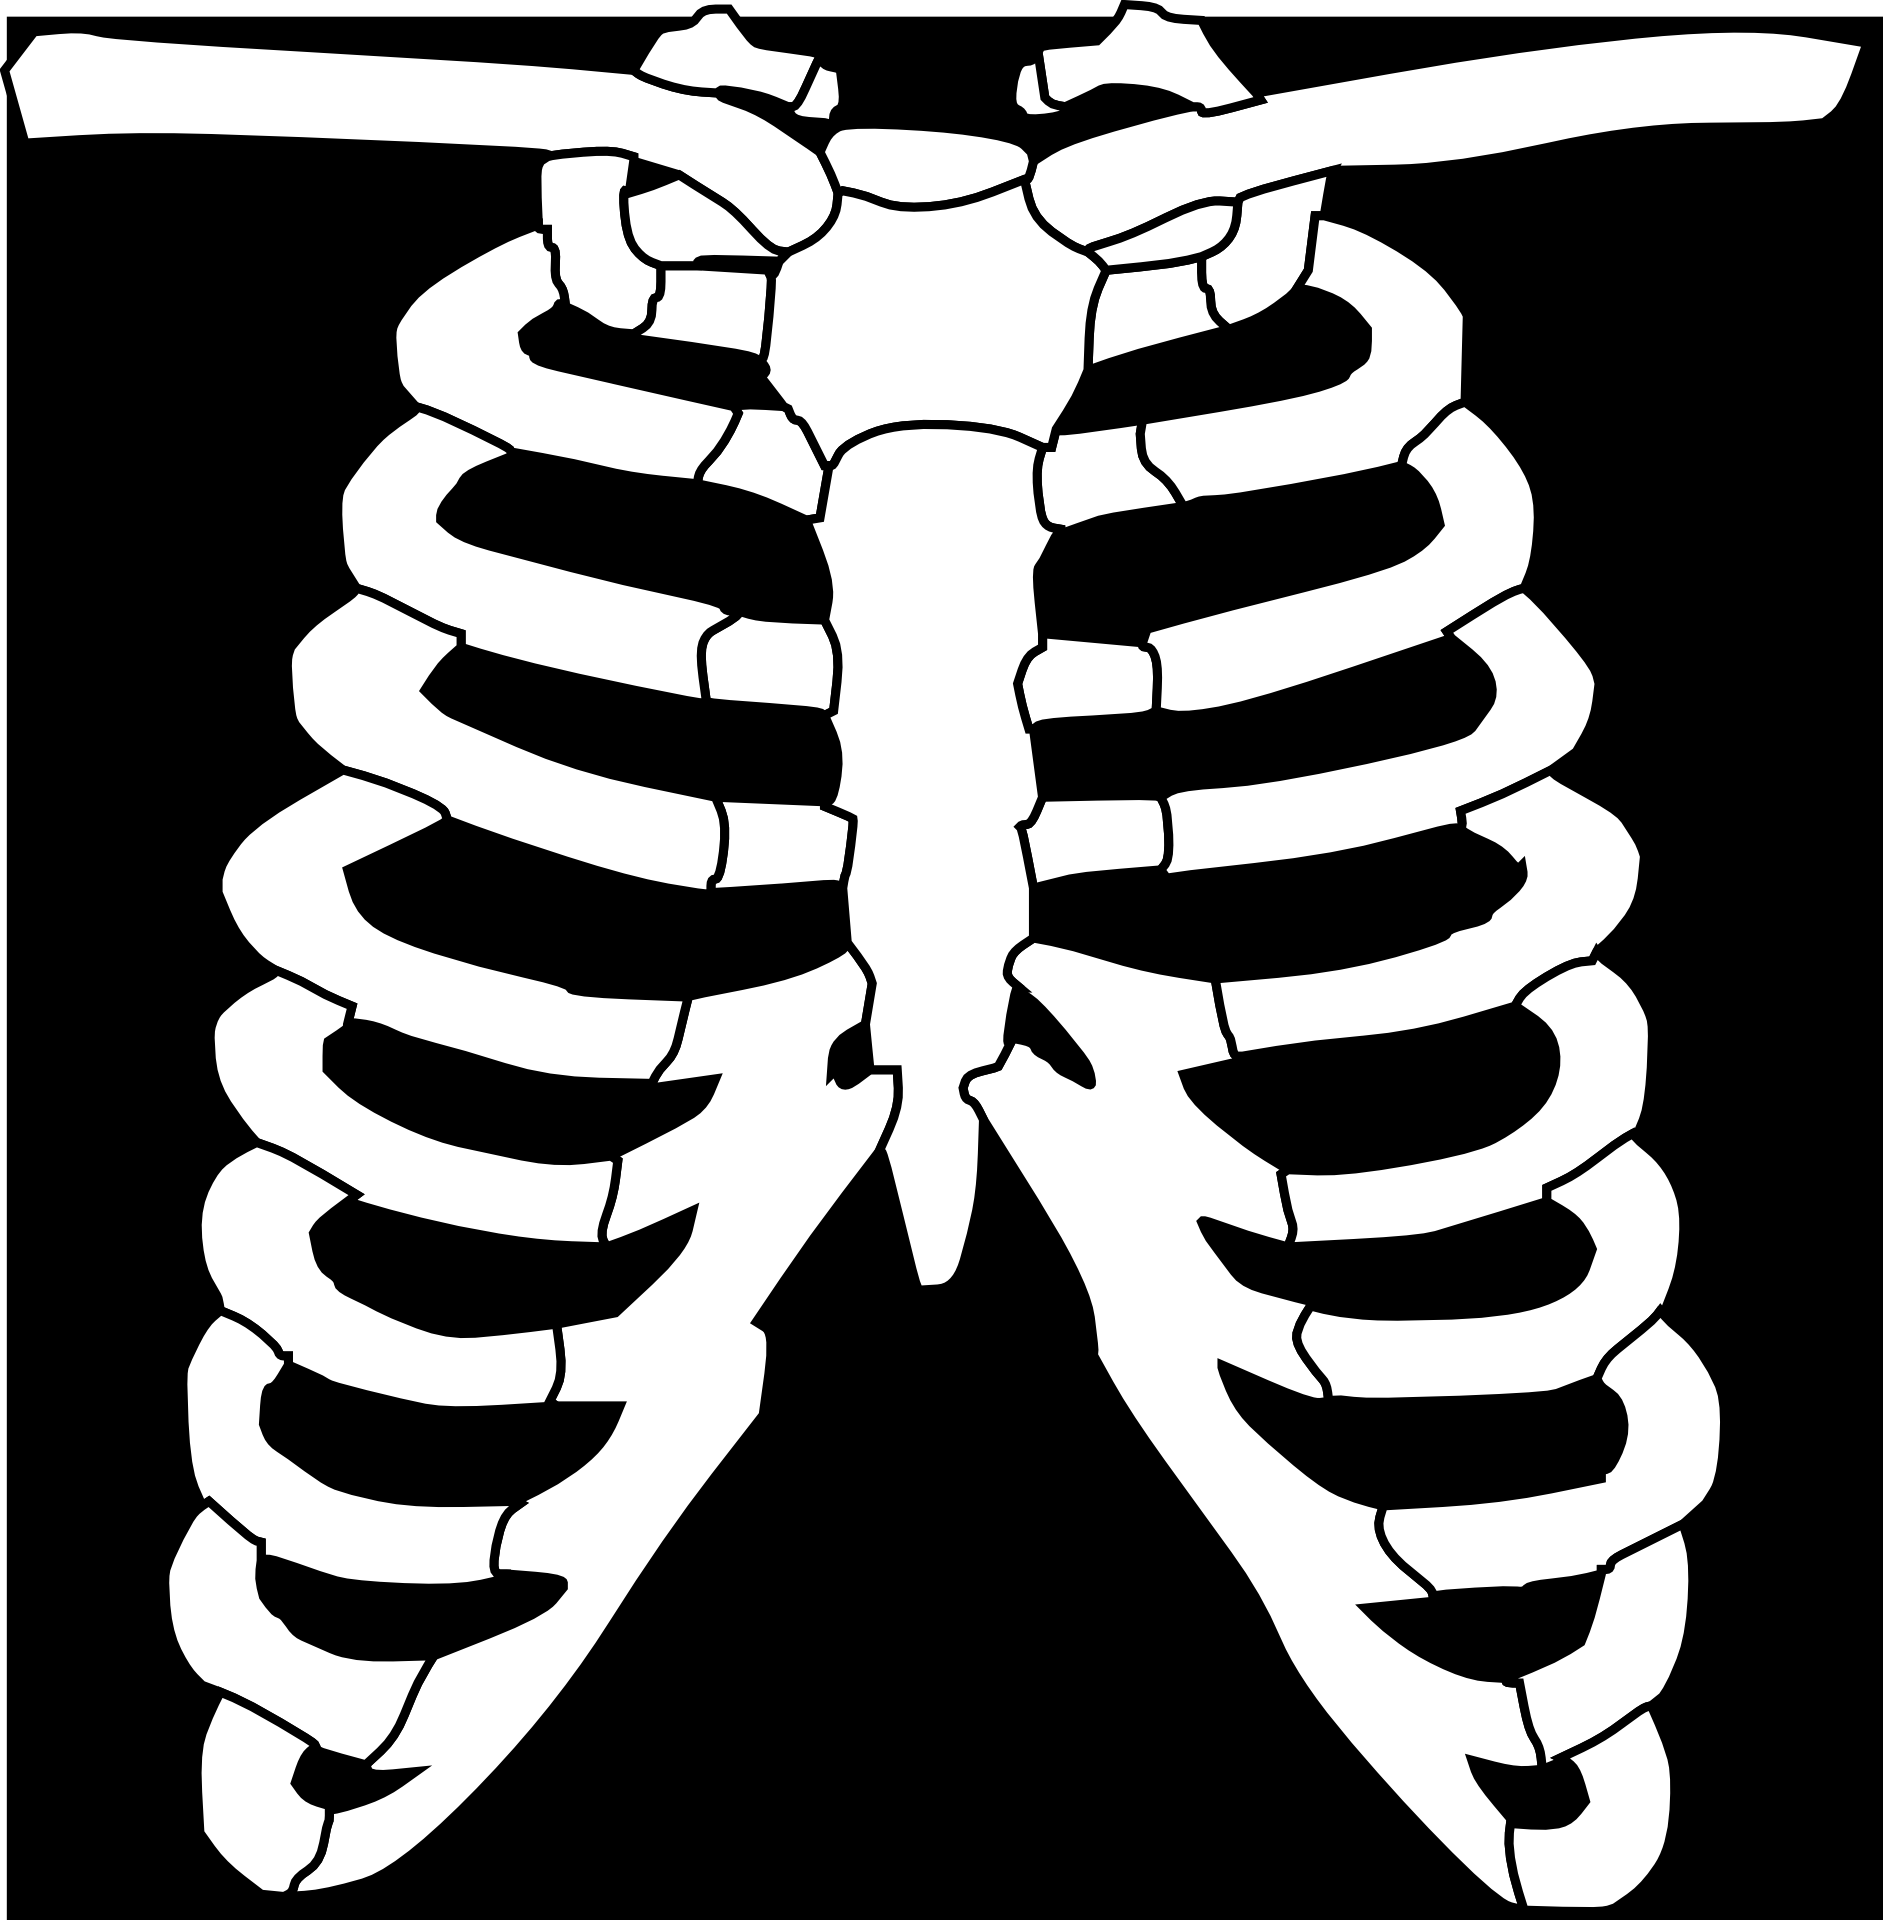 Clipart of the ribs free image.